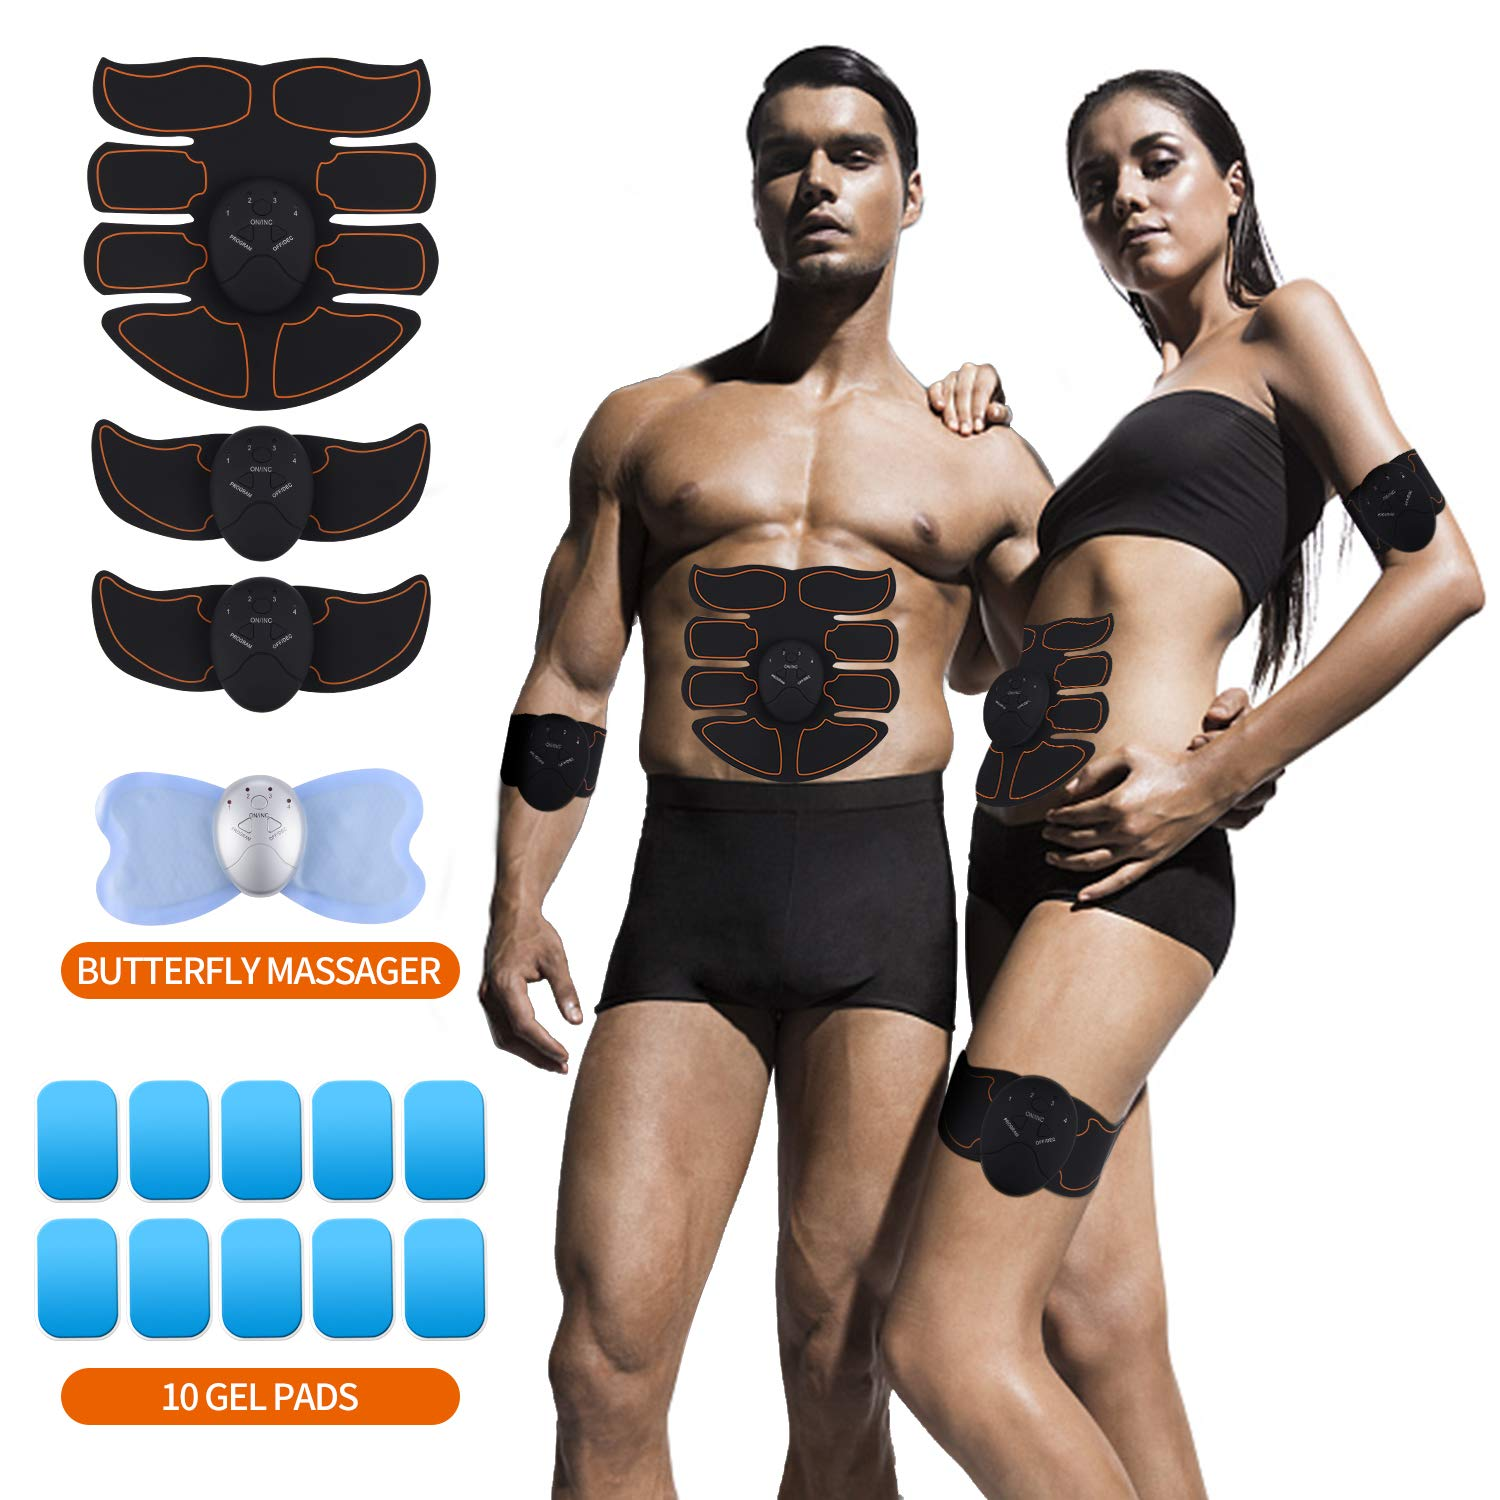 UYGHHK Abs Stimulator Muscle Trainer Ultimate Abs Stimulator Muscle Toner Toning Belt EMS ABS Toner Fitness Equipment for Abdomen/Arm/Leg + Butterfly Massager,10 Extra Gel Pads